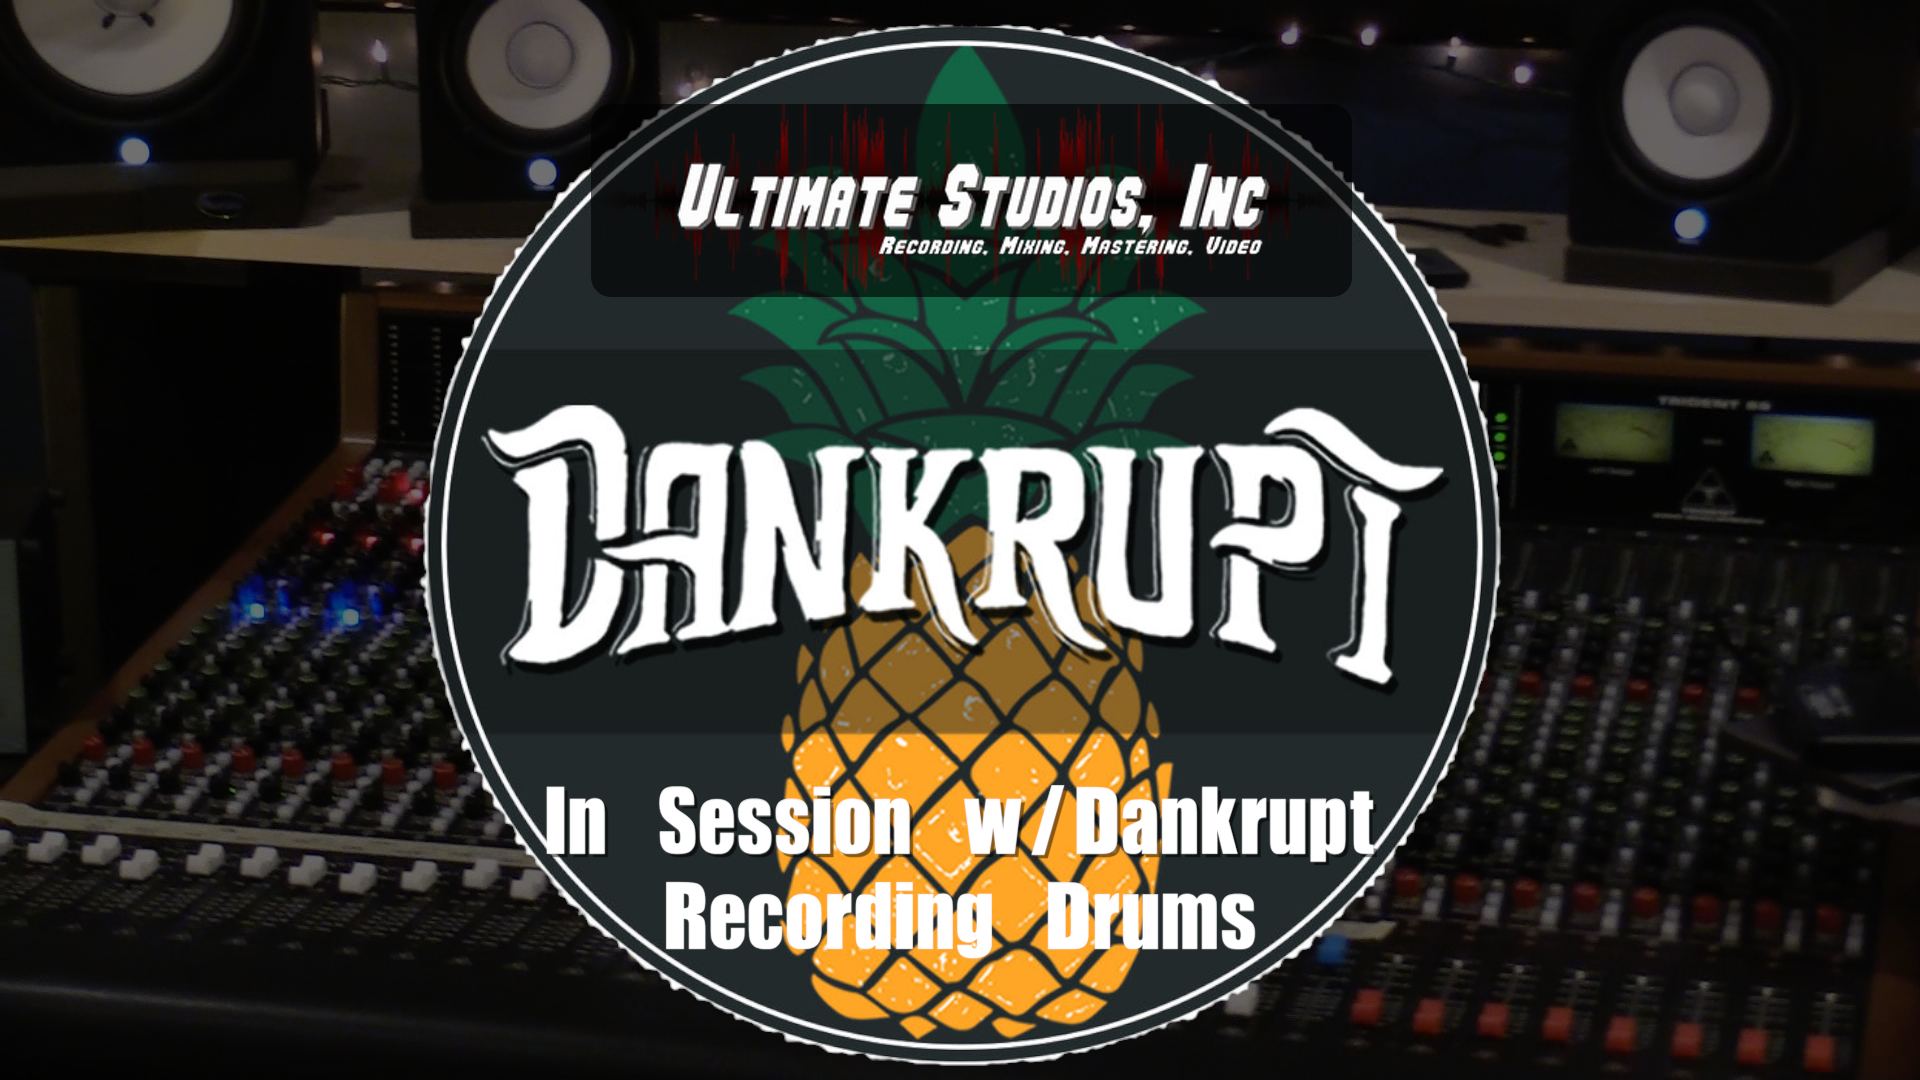 In Session with Dankrupt - Recording Drums